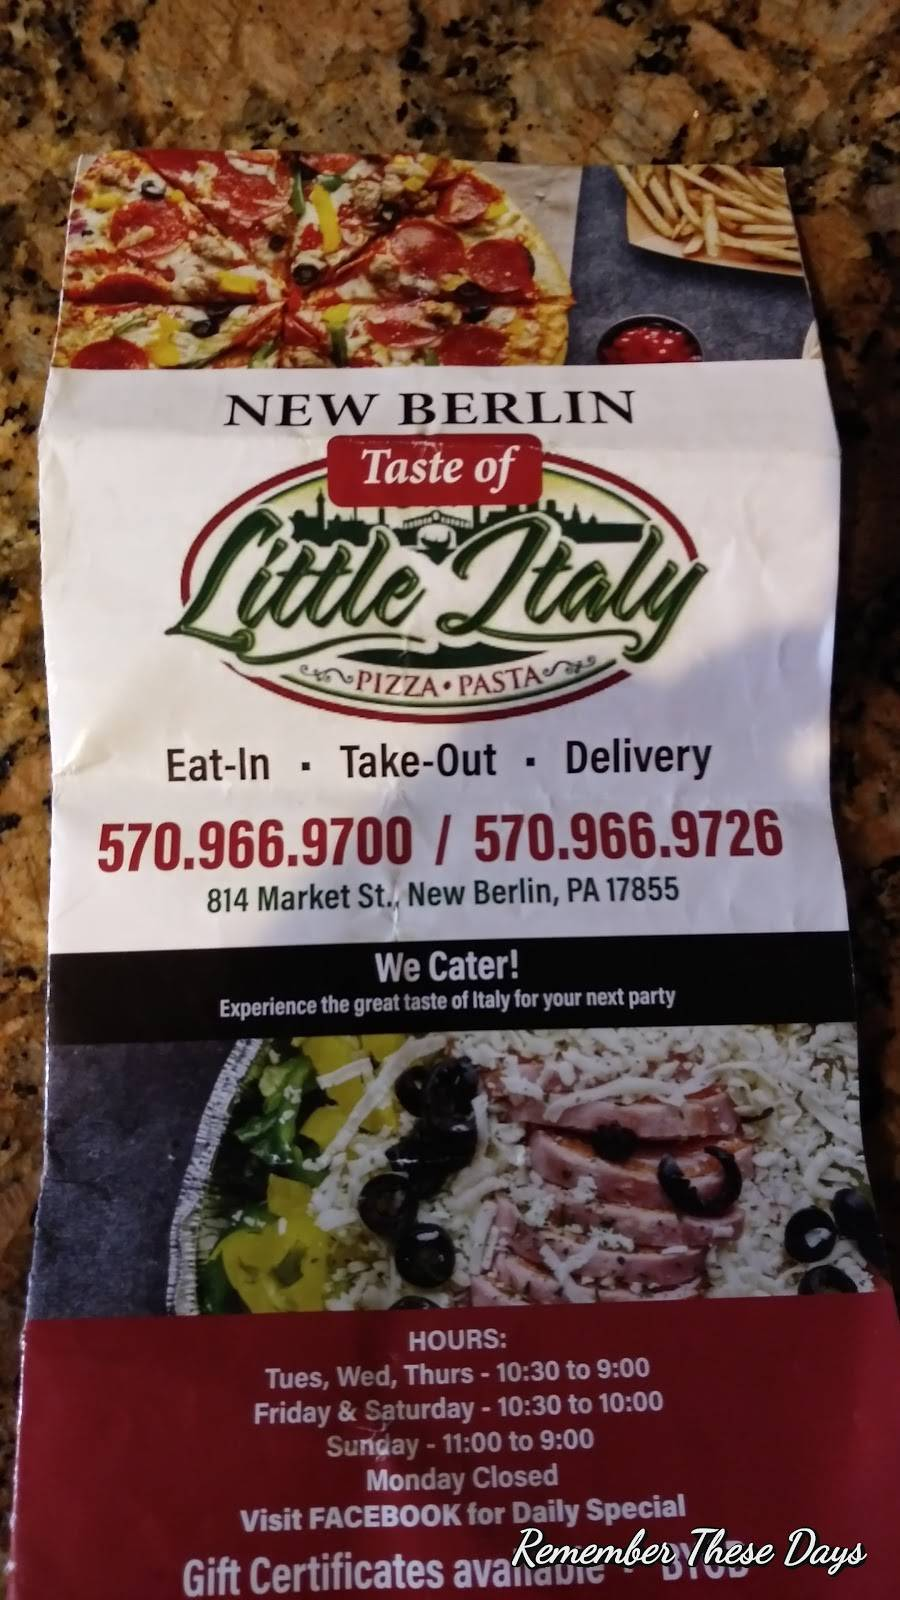 Taste Of Little Italy | restaurant | 814 Market St, New Berlin, PA 17855, USA | 5709669700 OR +1 570-966-9700